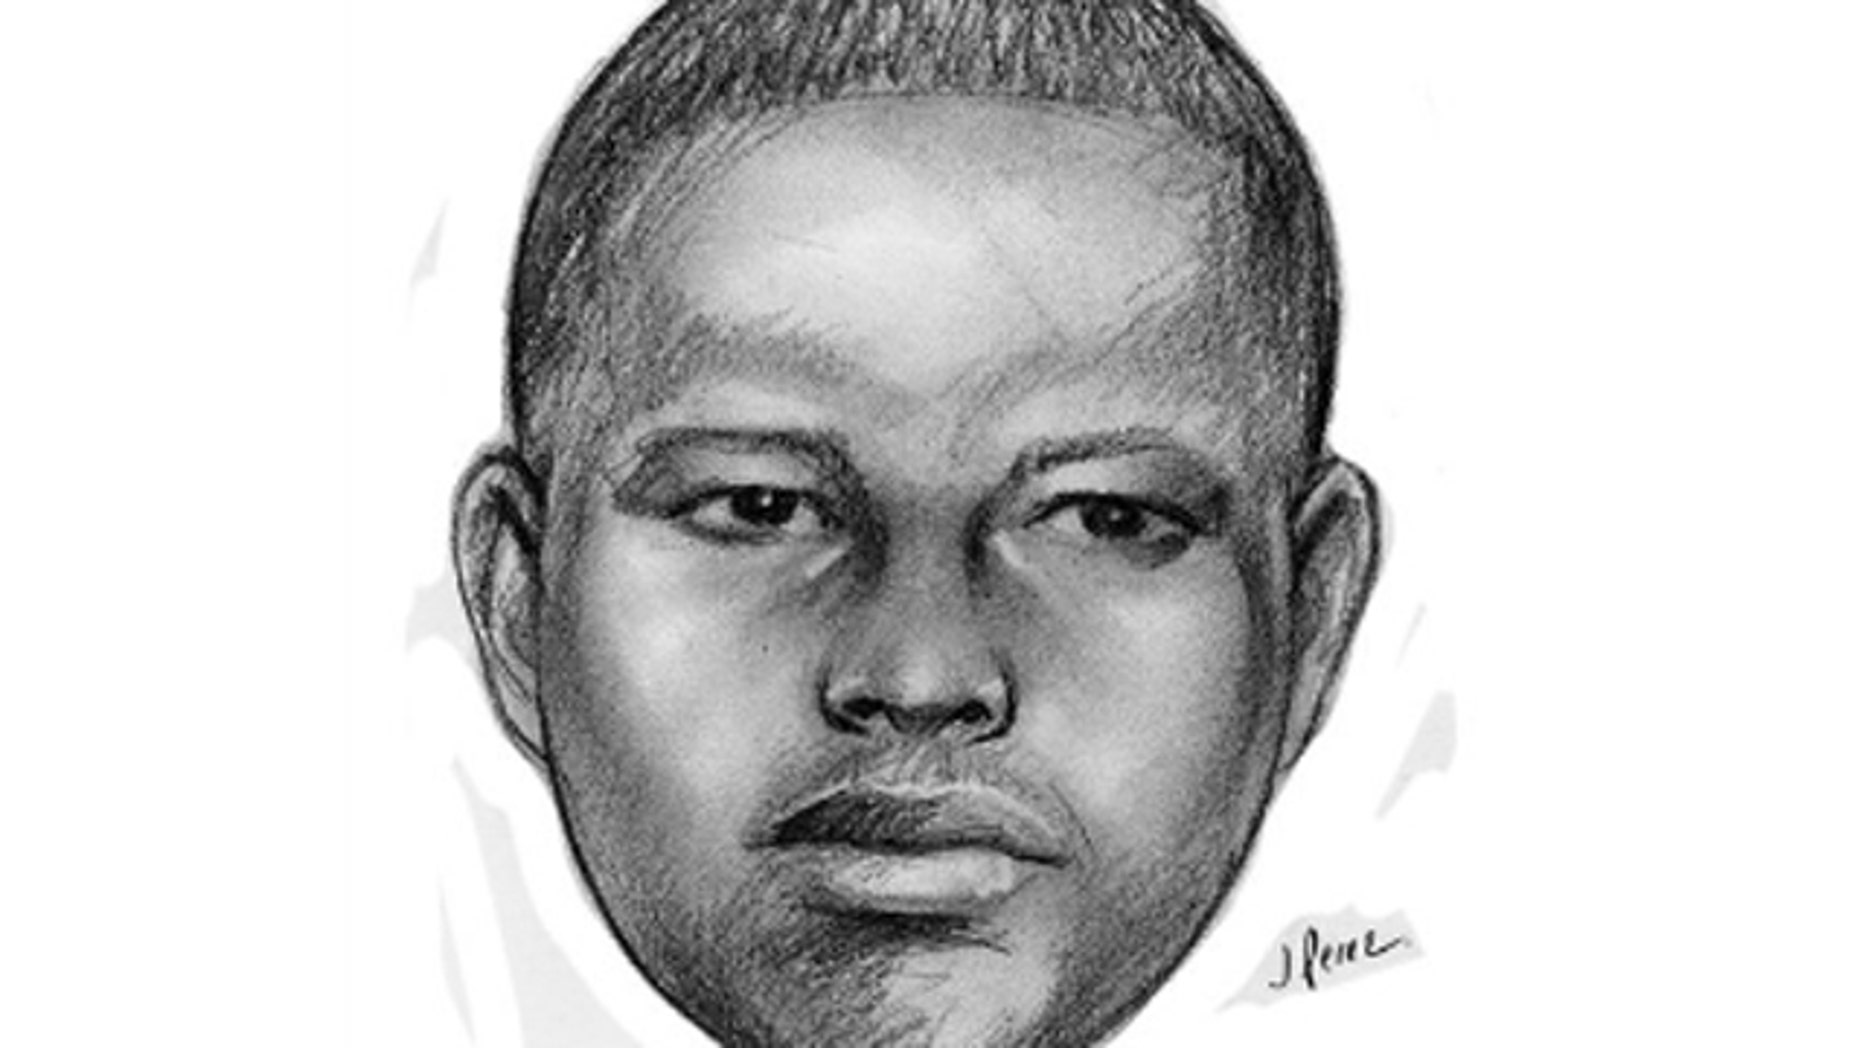 This sketch released by the New York Police Department shows a supsect wanted in a string of arson attacks on Sunday, Jan. 1, 2012 that involved throwing lit Molotov cocktails at four locations within the 103 precinct in the Queens borough of New York.